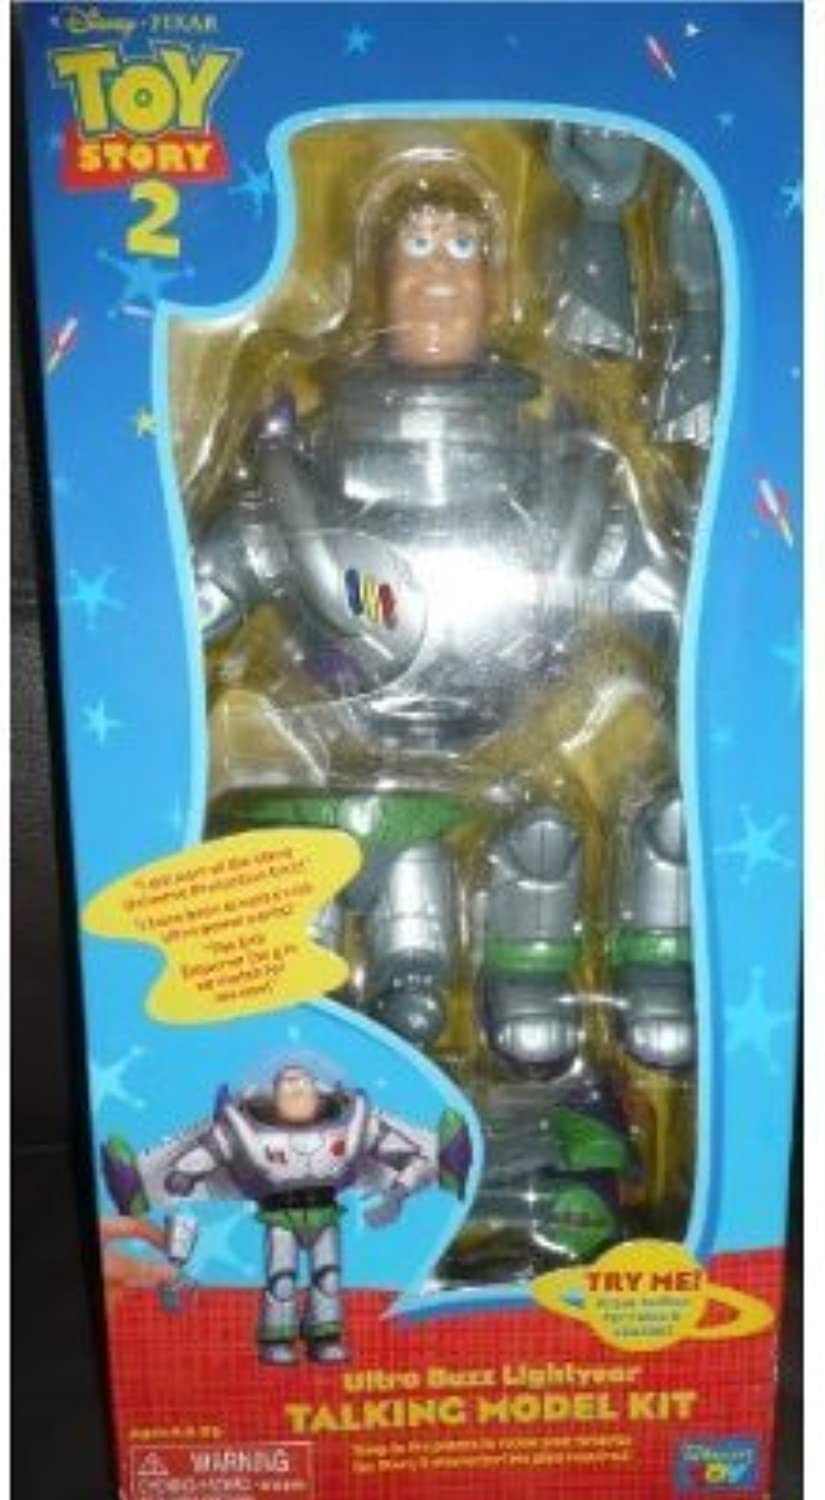 tienda de ventas outlet Ultra Ultra Ultra Buzz Lightyear Talking Model Kit, Juguete Story 2 by Thinkway  el mas de moda